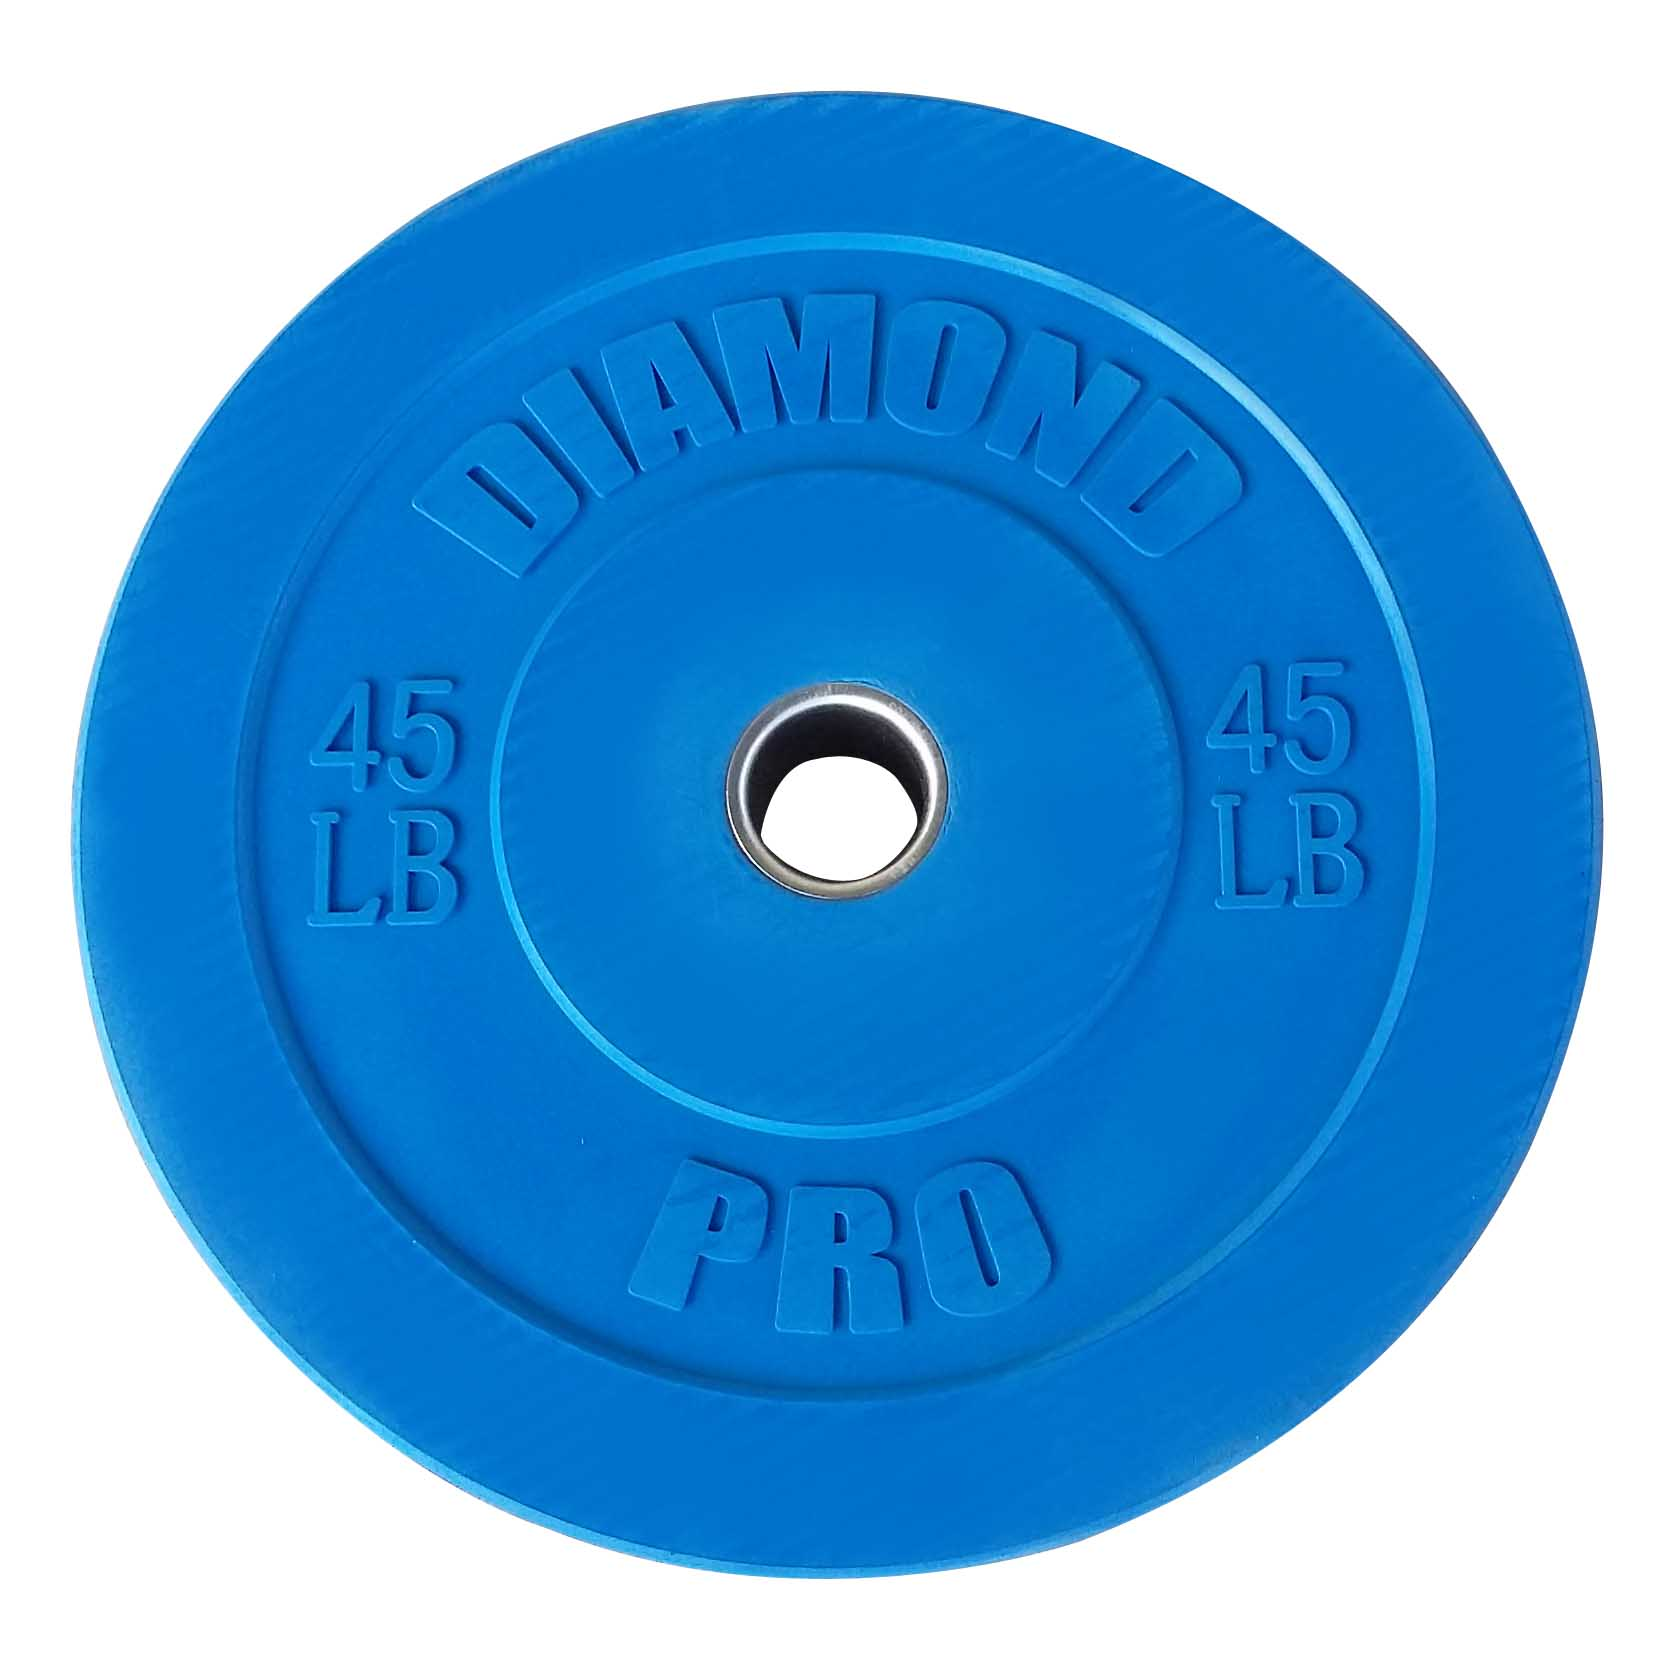 Diamond Pro 45 lb Color Bumper Plate Single